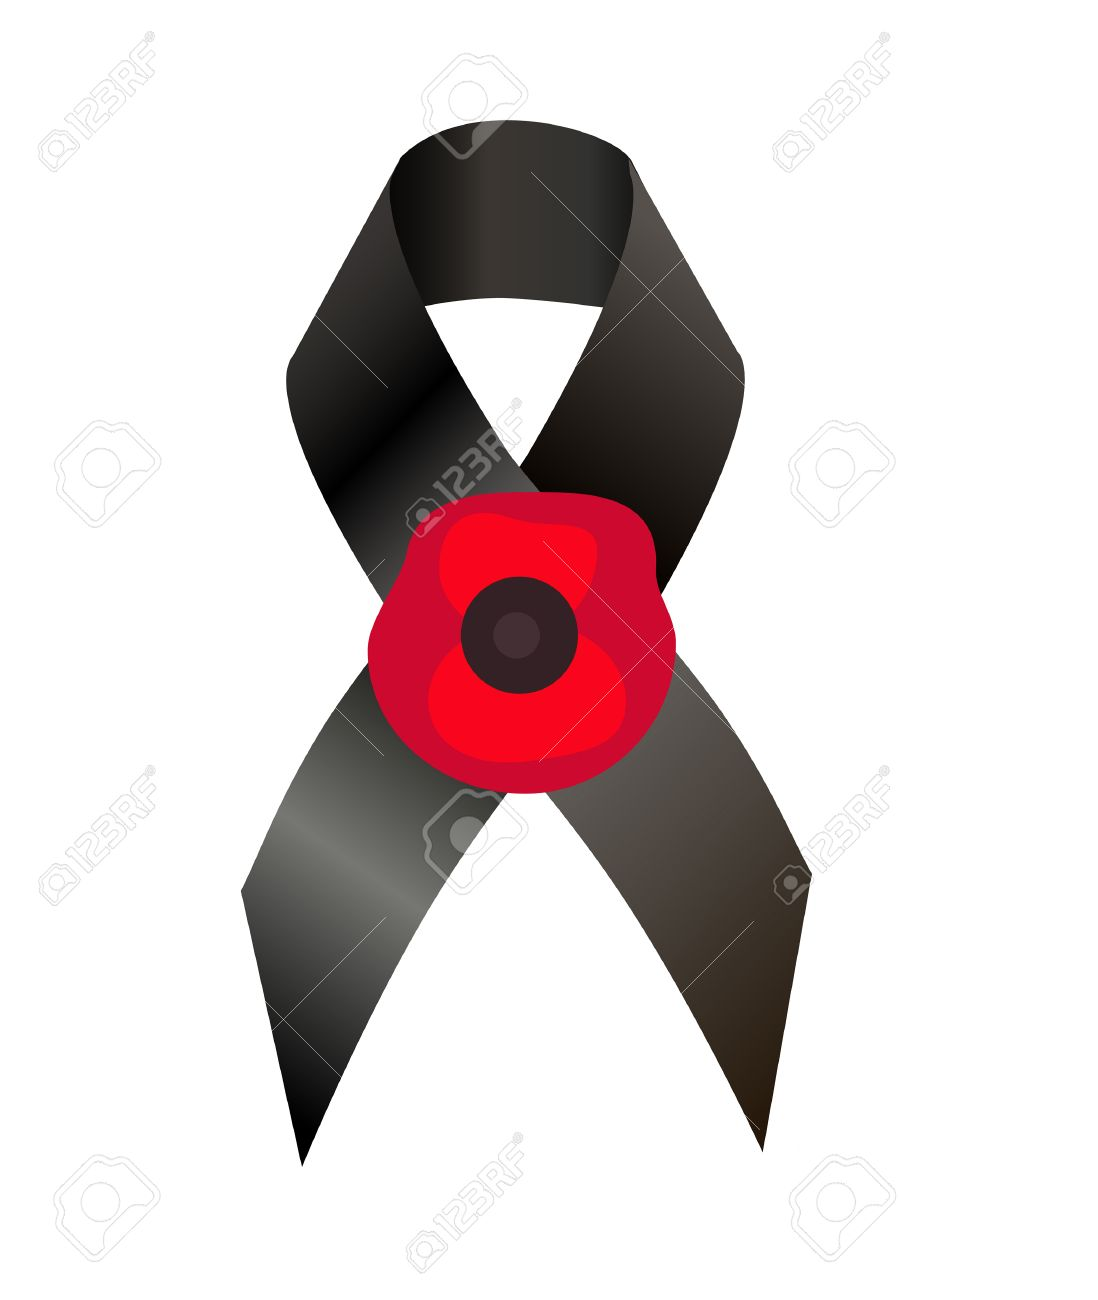 Poppy symbol of remembrance images symbol and sign ideas black awareness ribbon and the flower poppy a symbol remembrance black awareness ribbon and the flower biocorpaavc